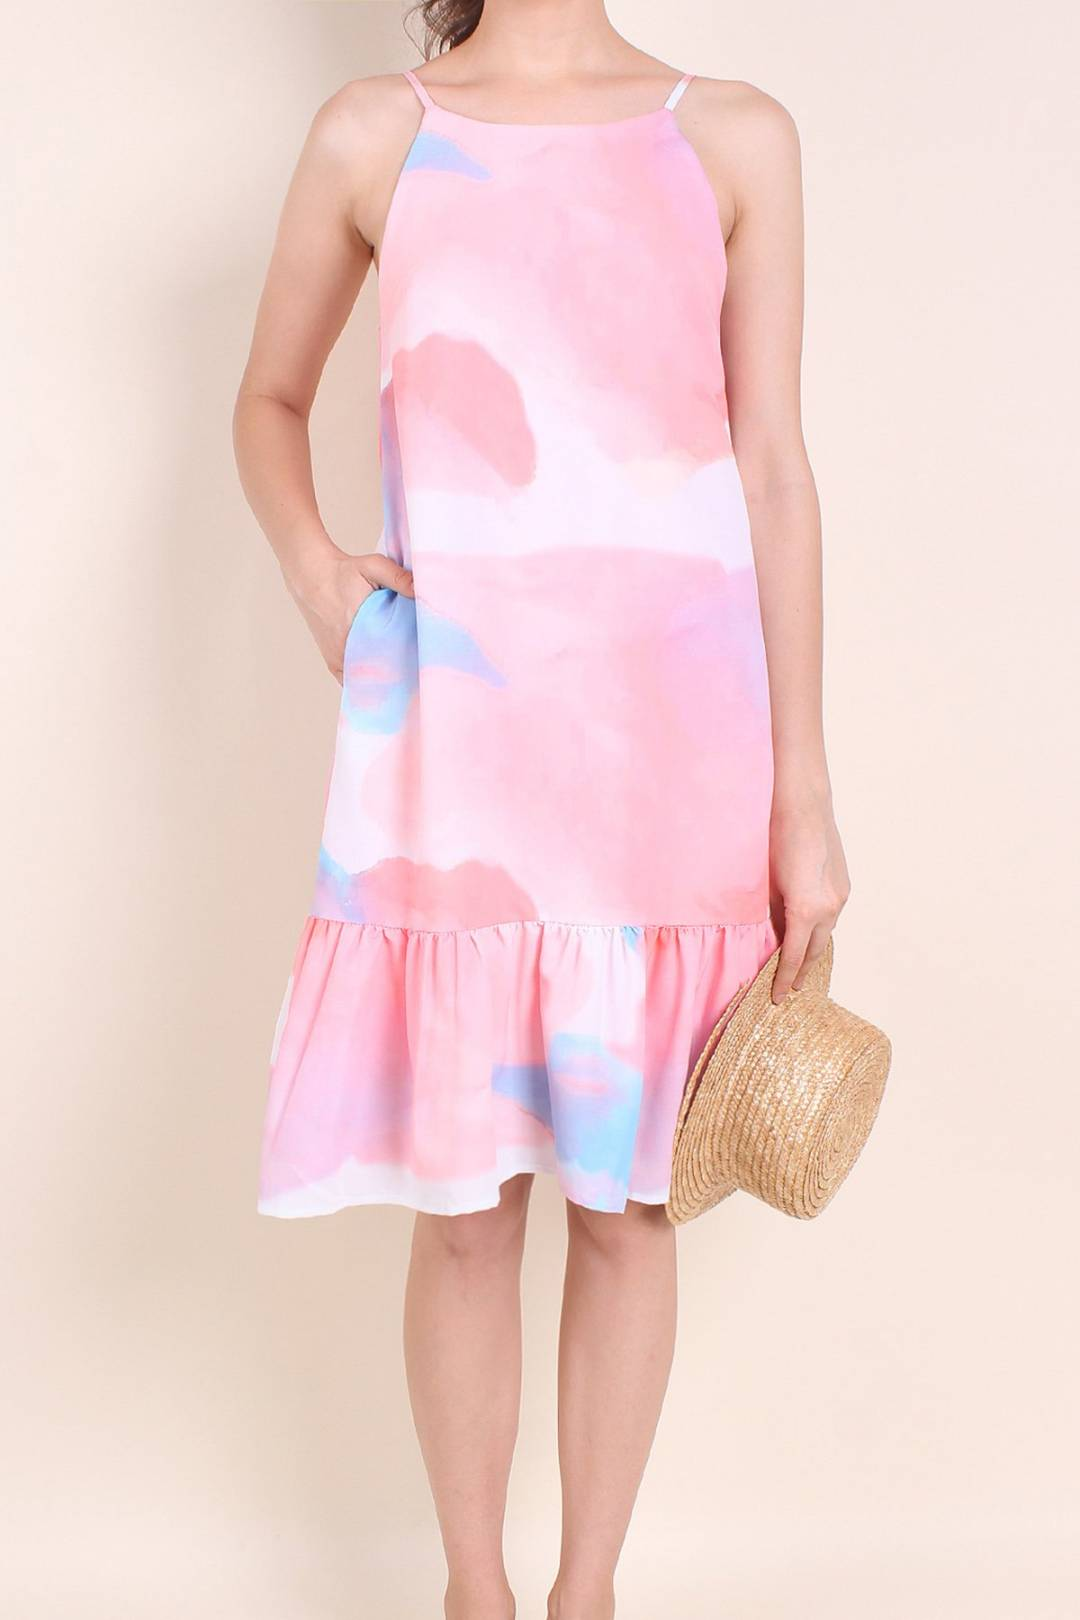 MADEBYNM DIXIE ABSTRACT DROPWAIST HEM TRAPEZE IN WATERCOLOUR PINK [XS/S/M/L]